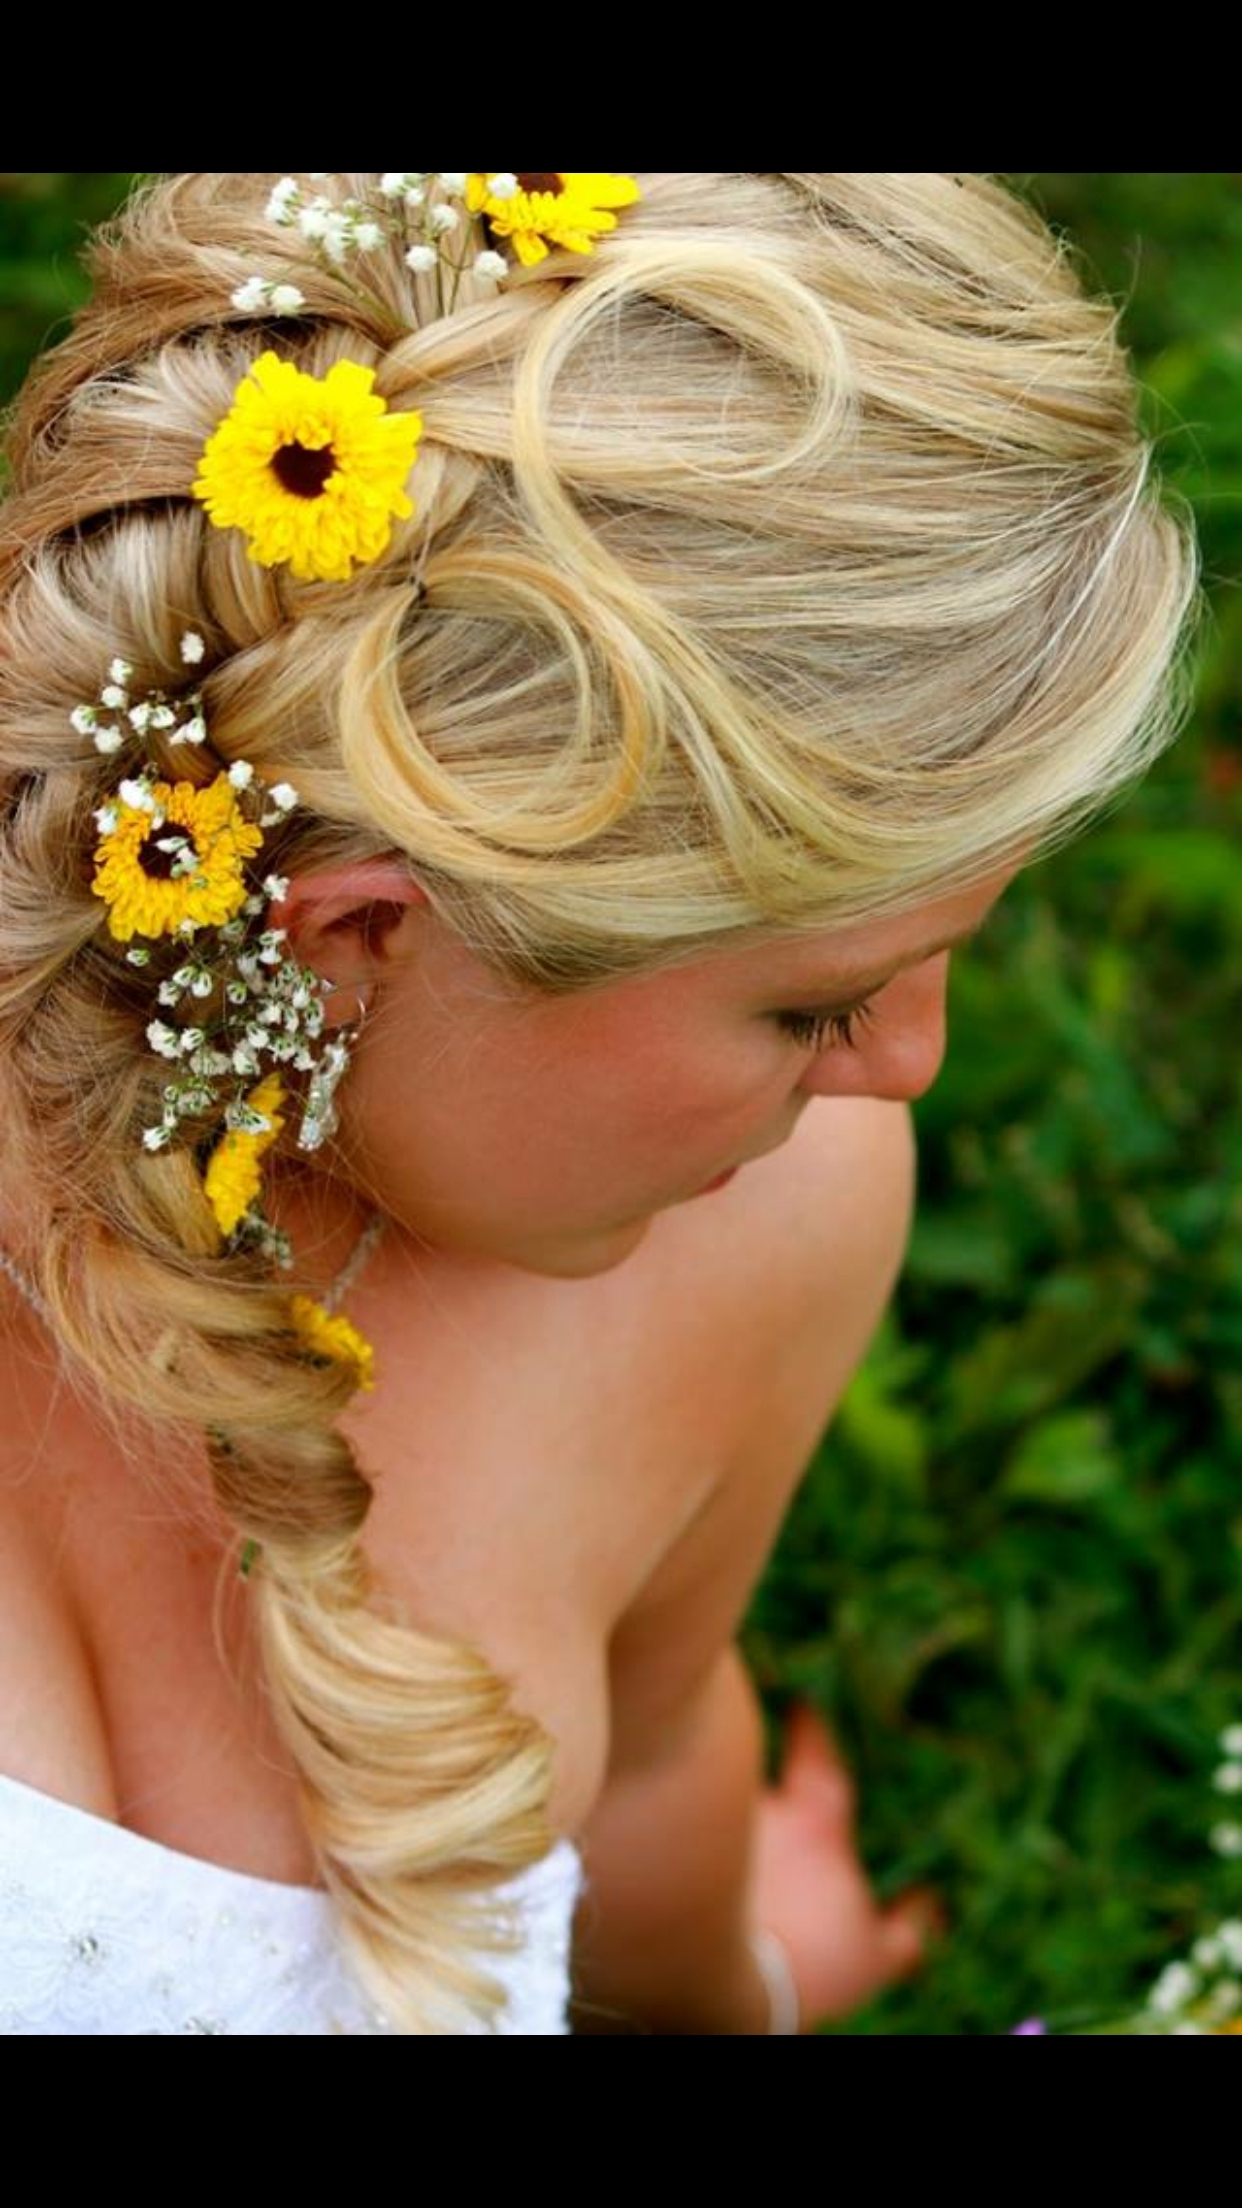 Wedding Hair : Cool Country Wedding Hair Styles Ideas Casual With Regard To Widely Used Wedding Hairstyles With Sunflowers (View 4 of 15)